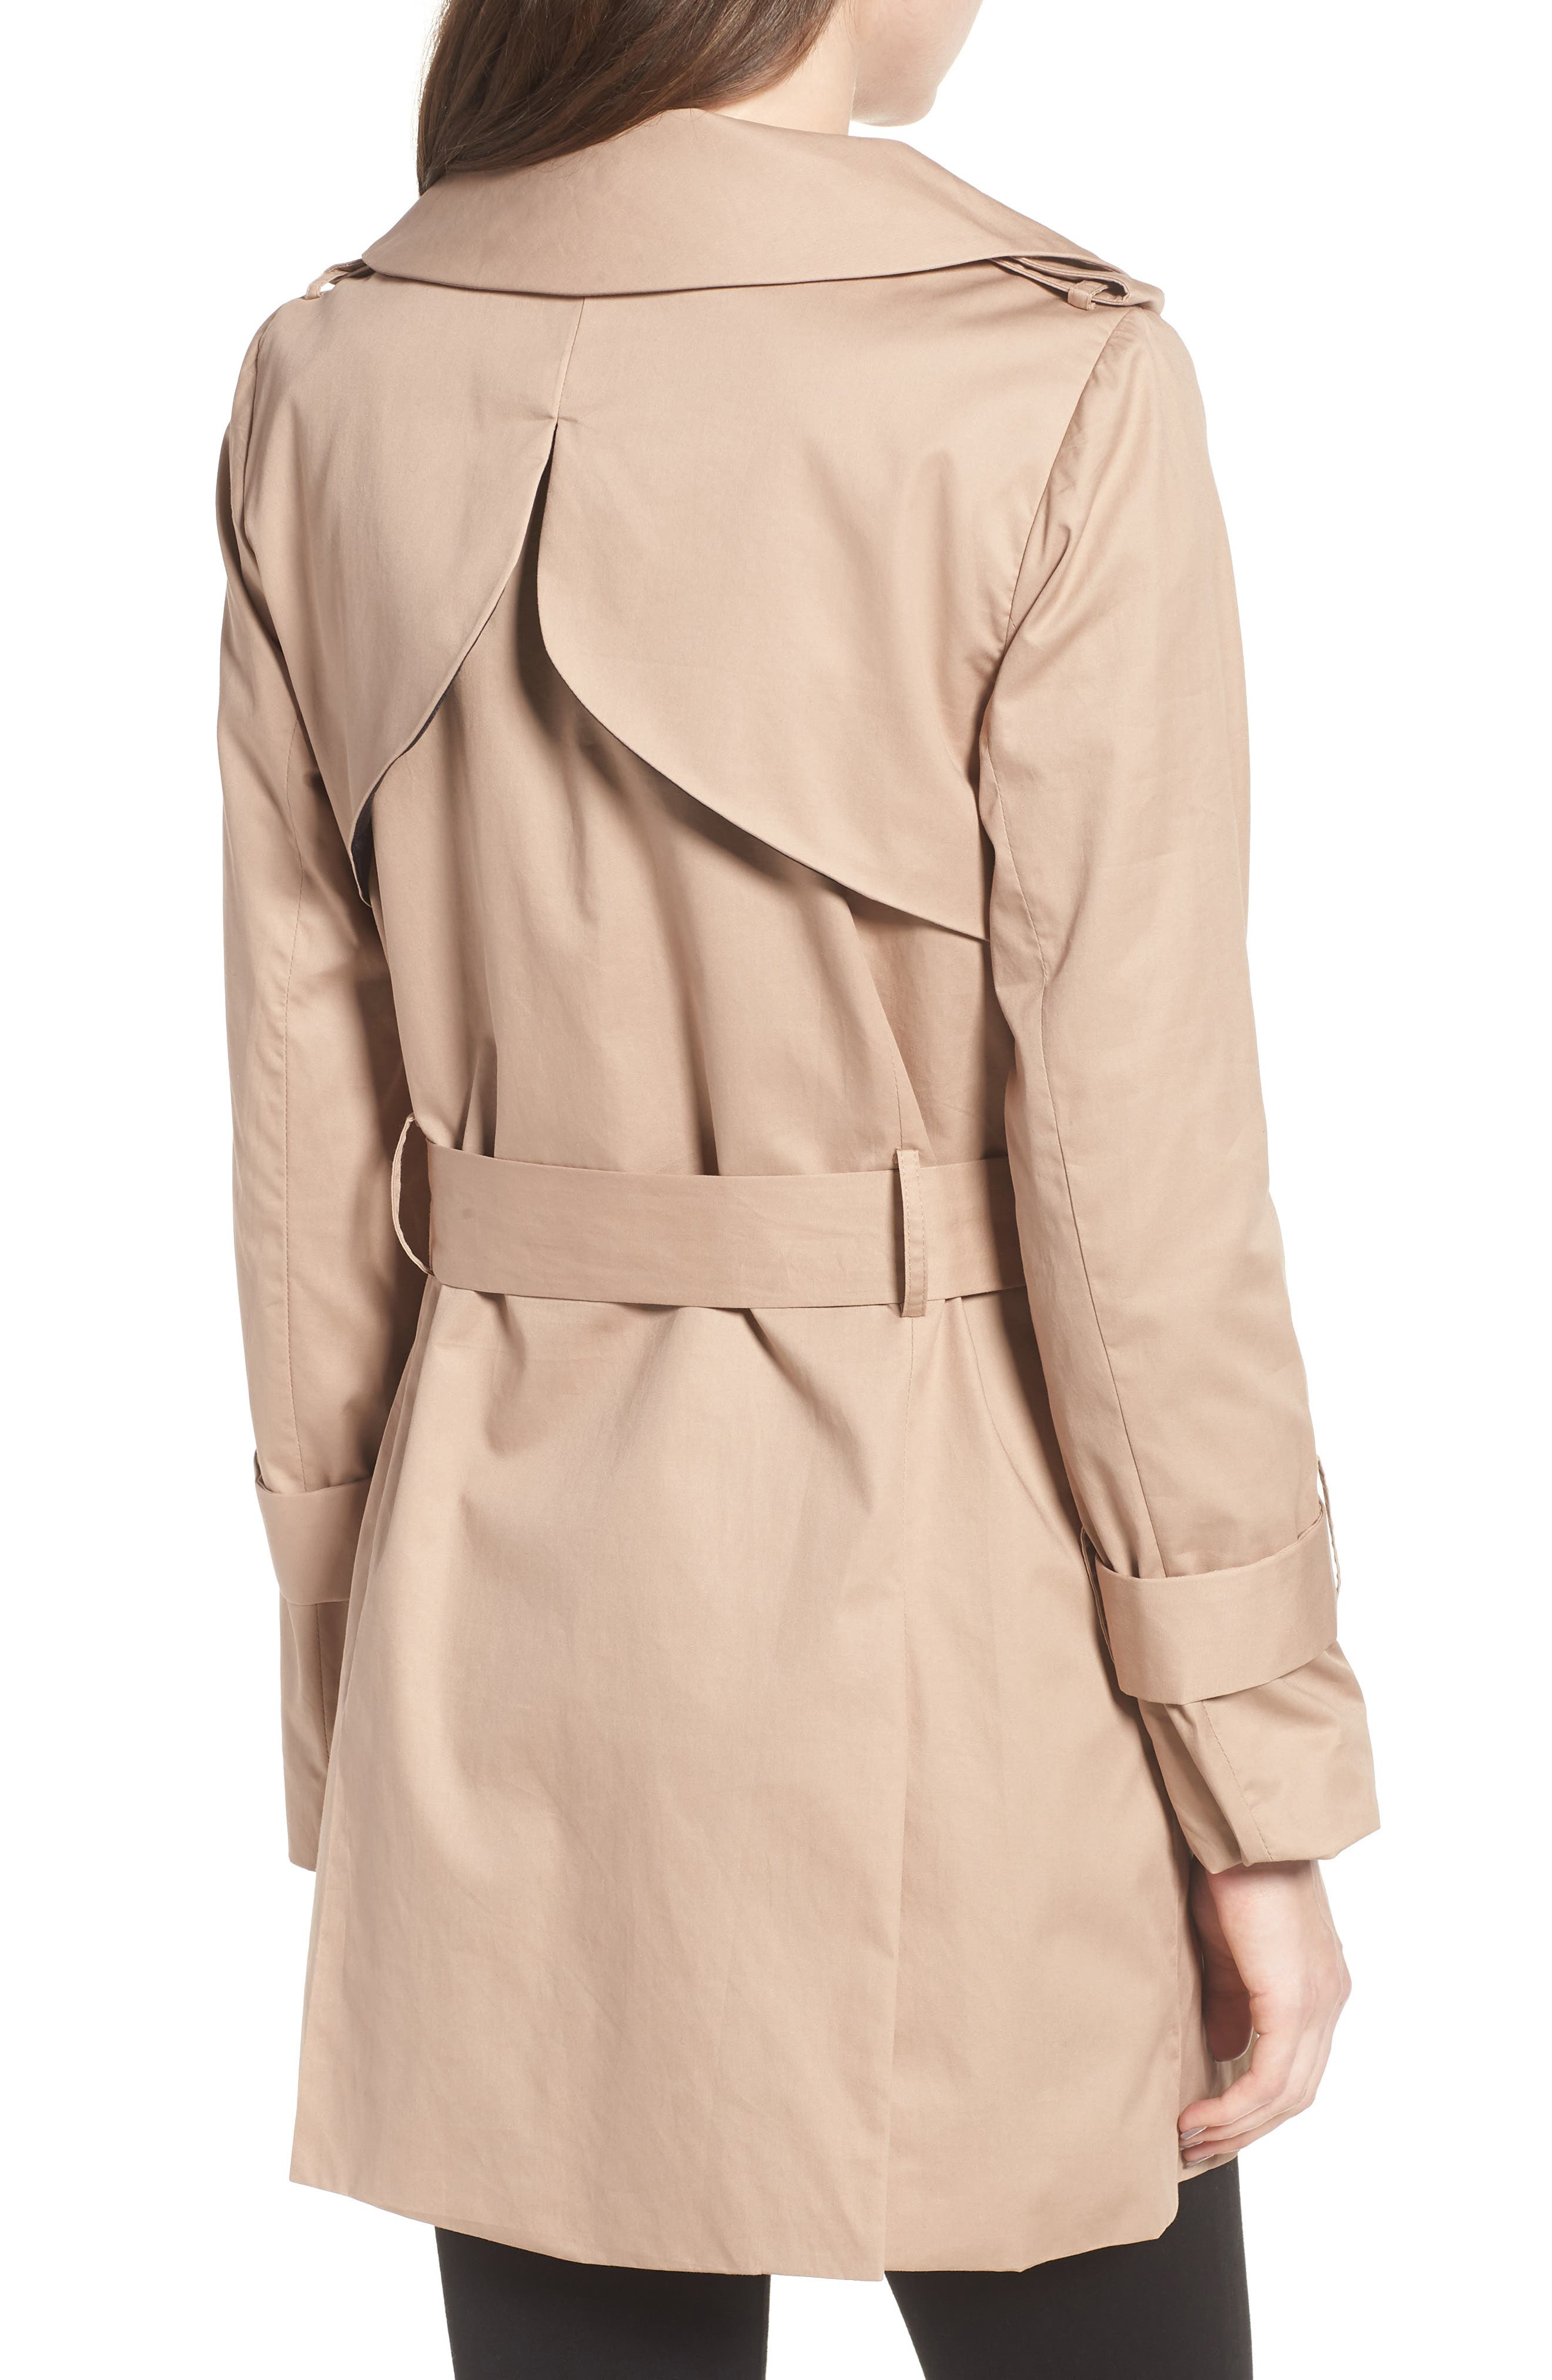 Moss Trench Coat,                             Alternate thumbnail 2, color,                             Sand